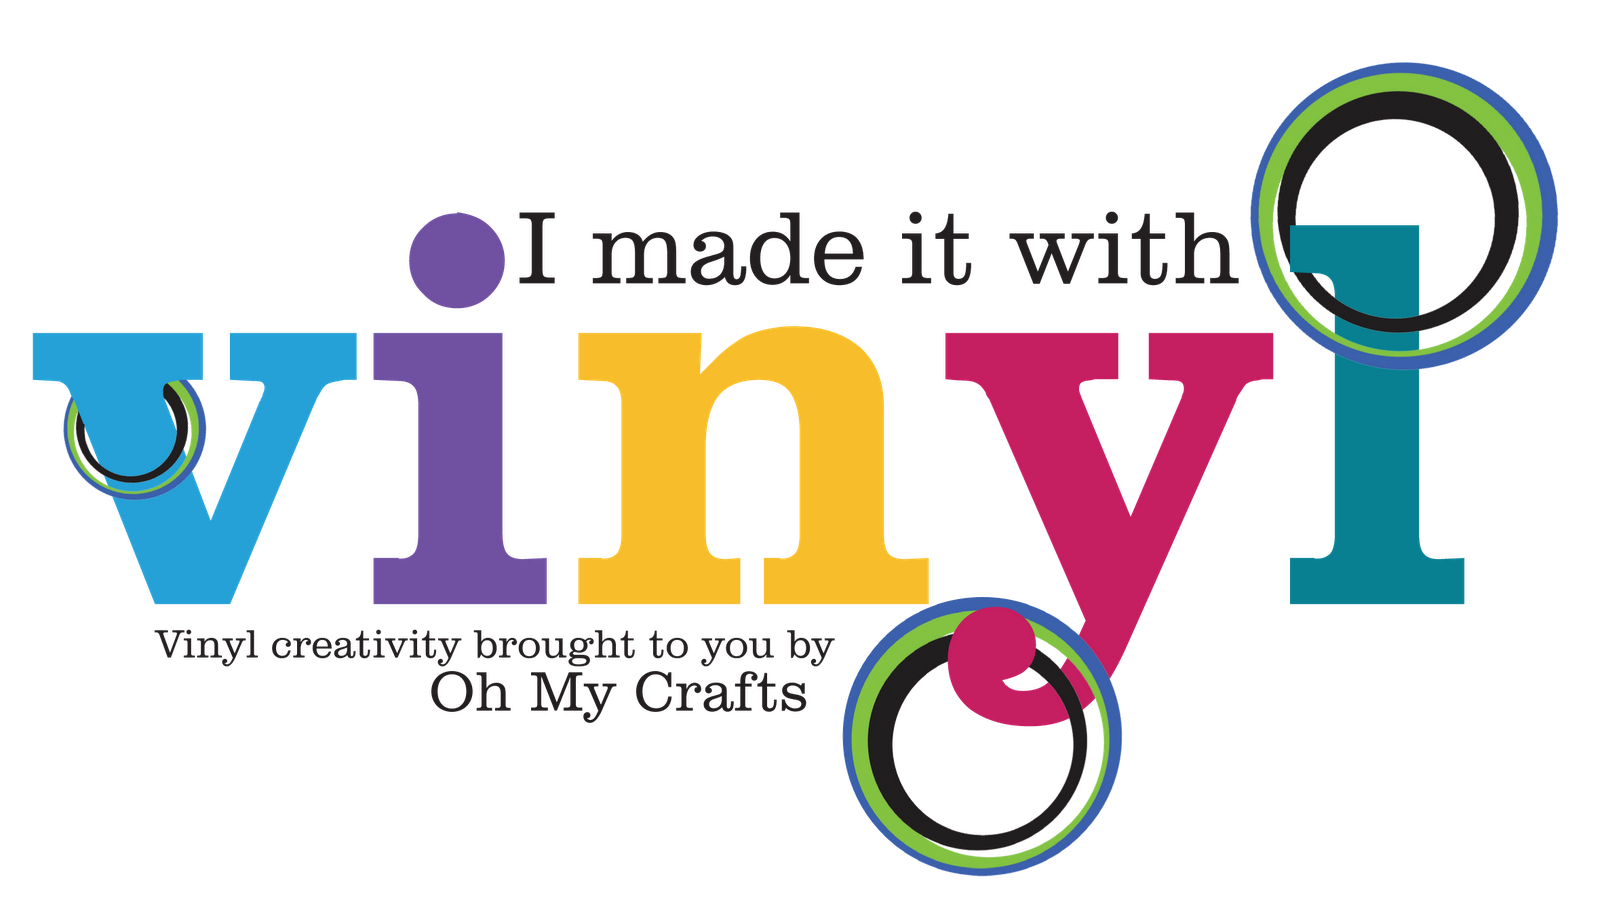 Vinyl - Oh My Crafts!